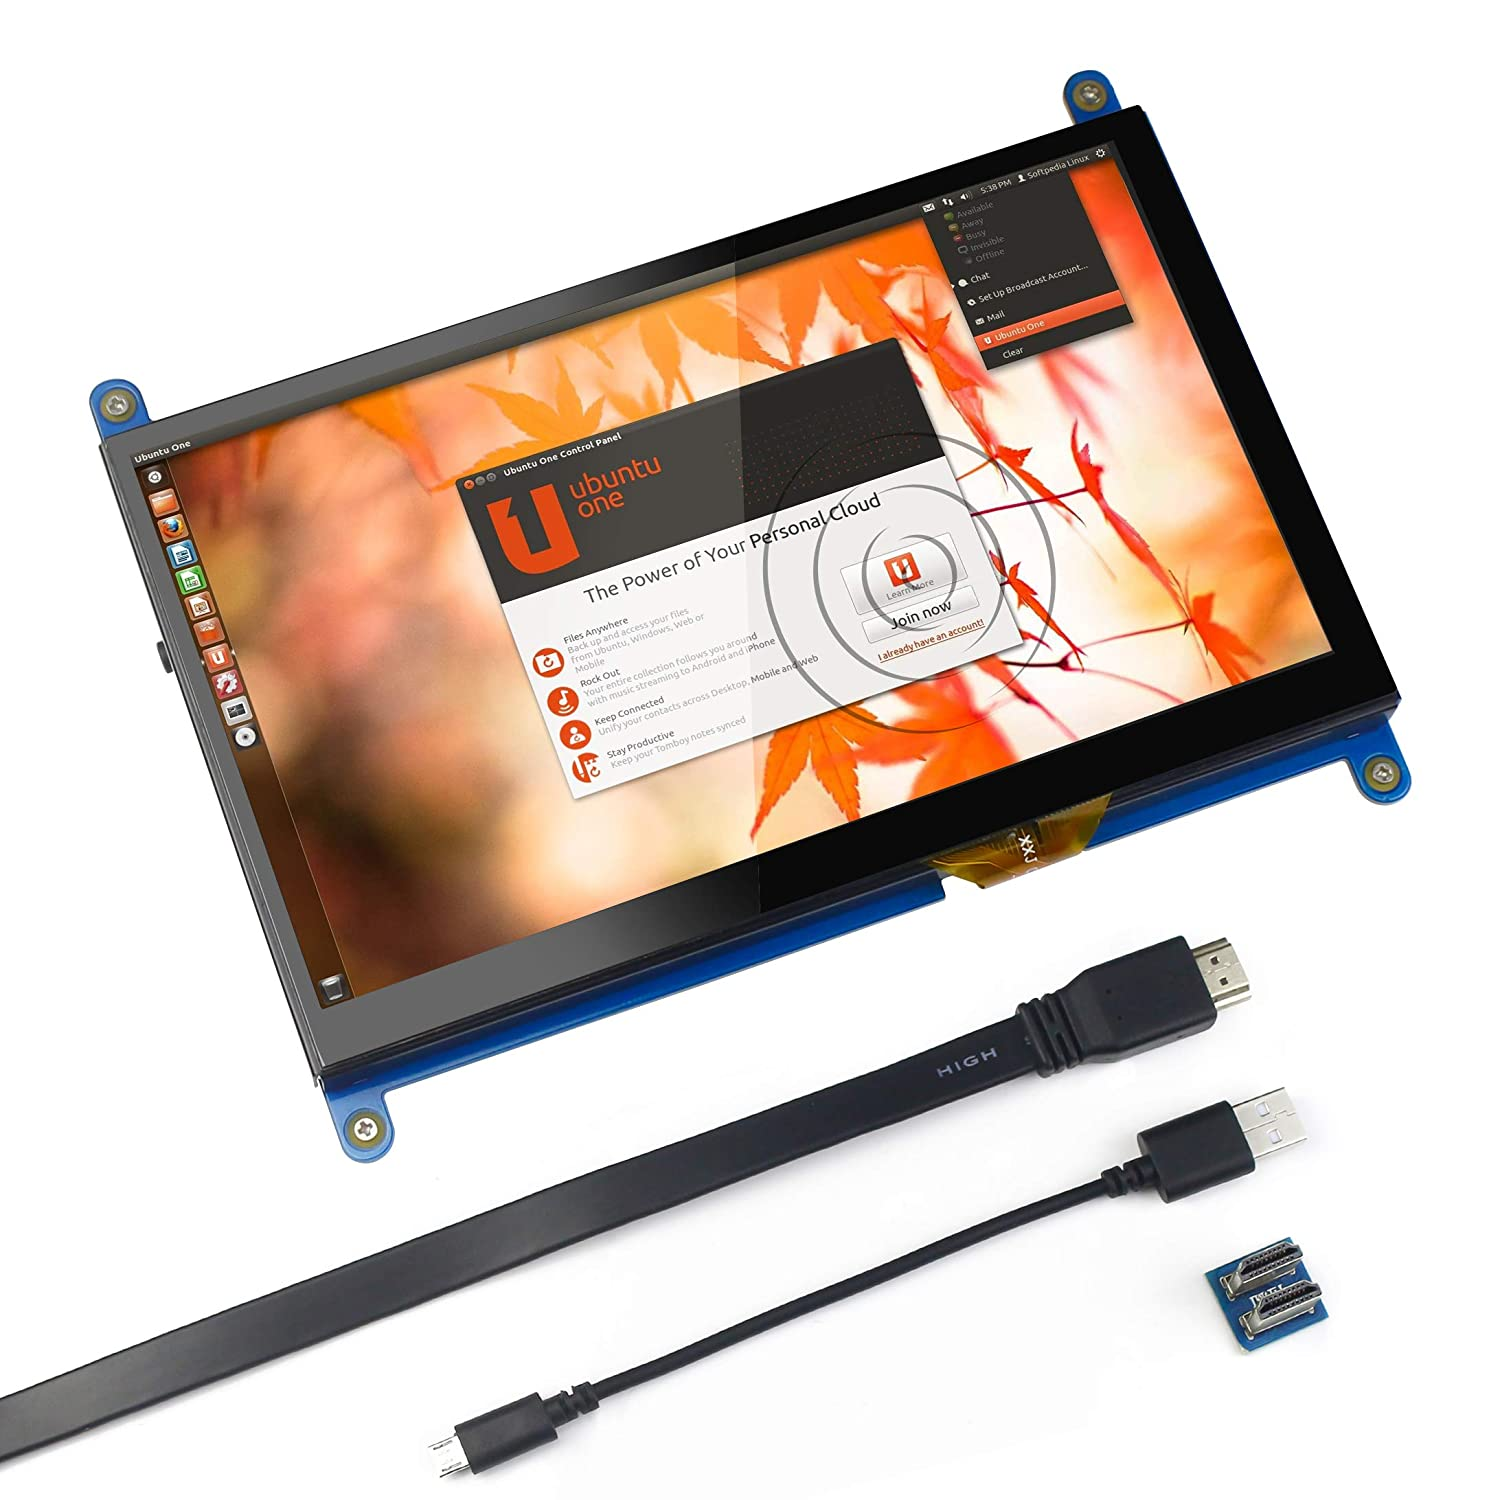 for Raspberry Pi 7 inch Capacitive Touch Screen HDMI Monitor - 1024x600 HD  LCD Display Gaming Screen, Drive Free for Raspberry Pi/Windows 10/Beagle